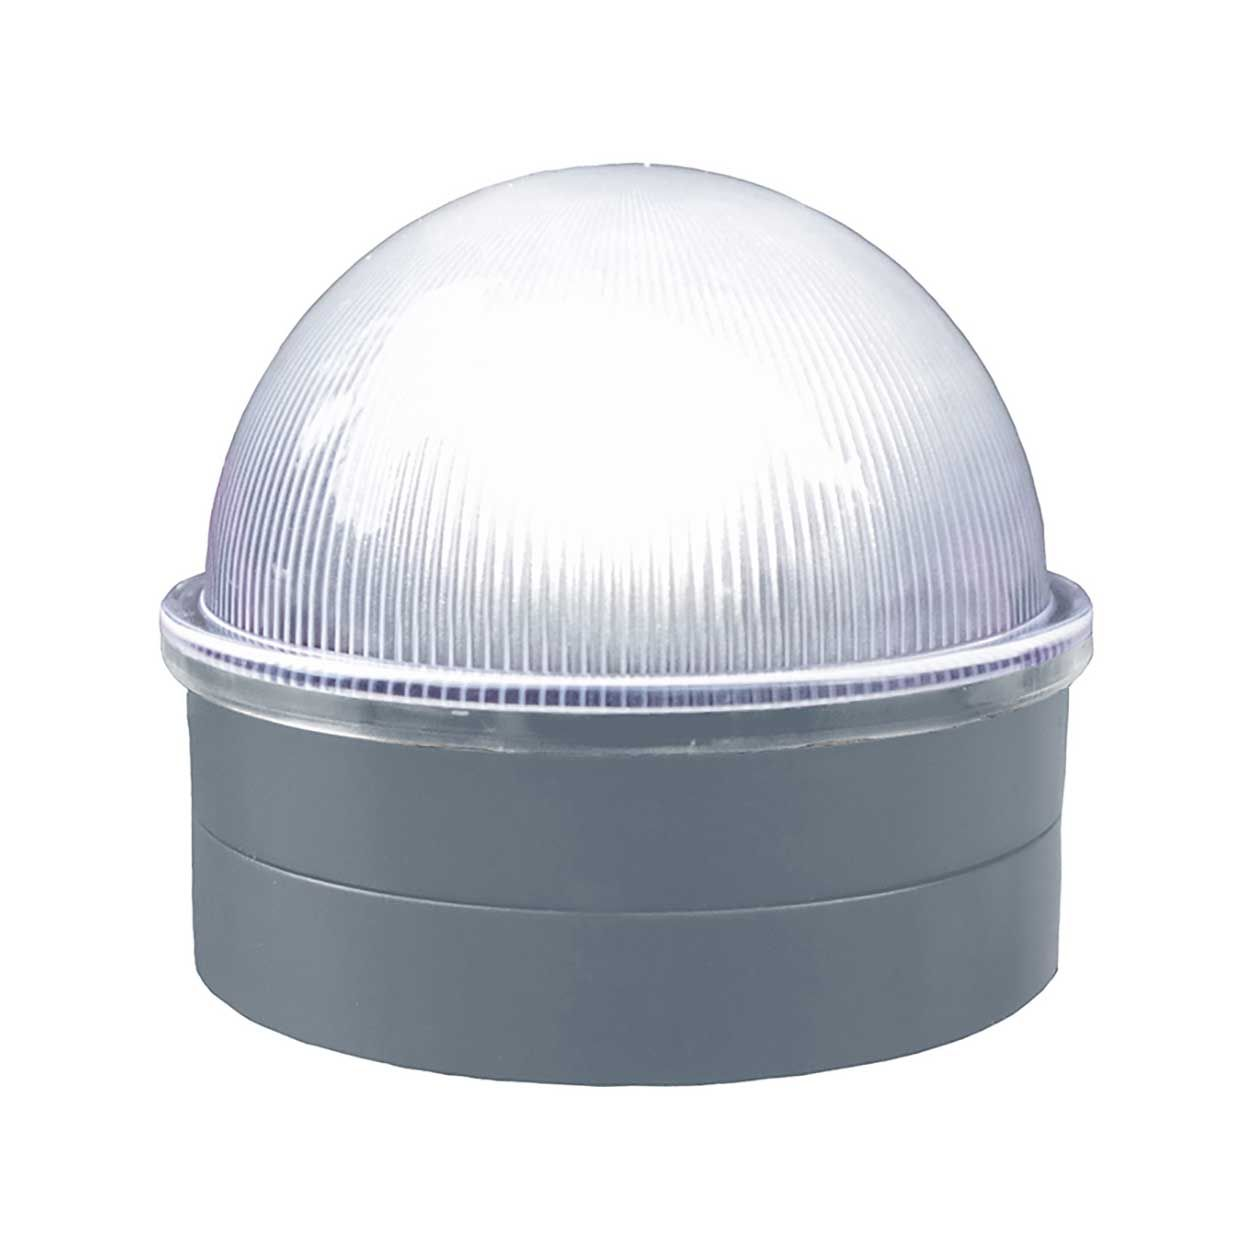 Classy Caps Summit Solar Lighting Post Caps for Round Chain Link Fence Posts - Silver